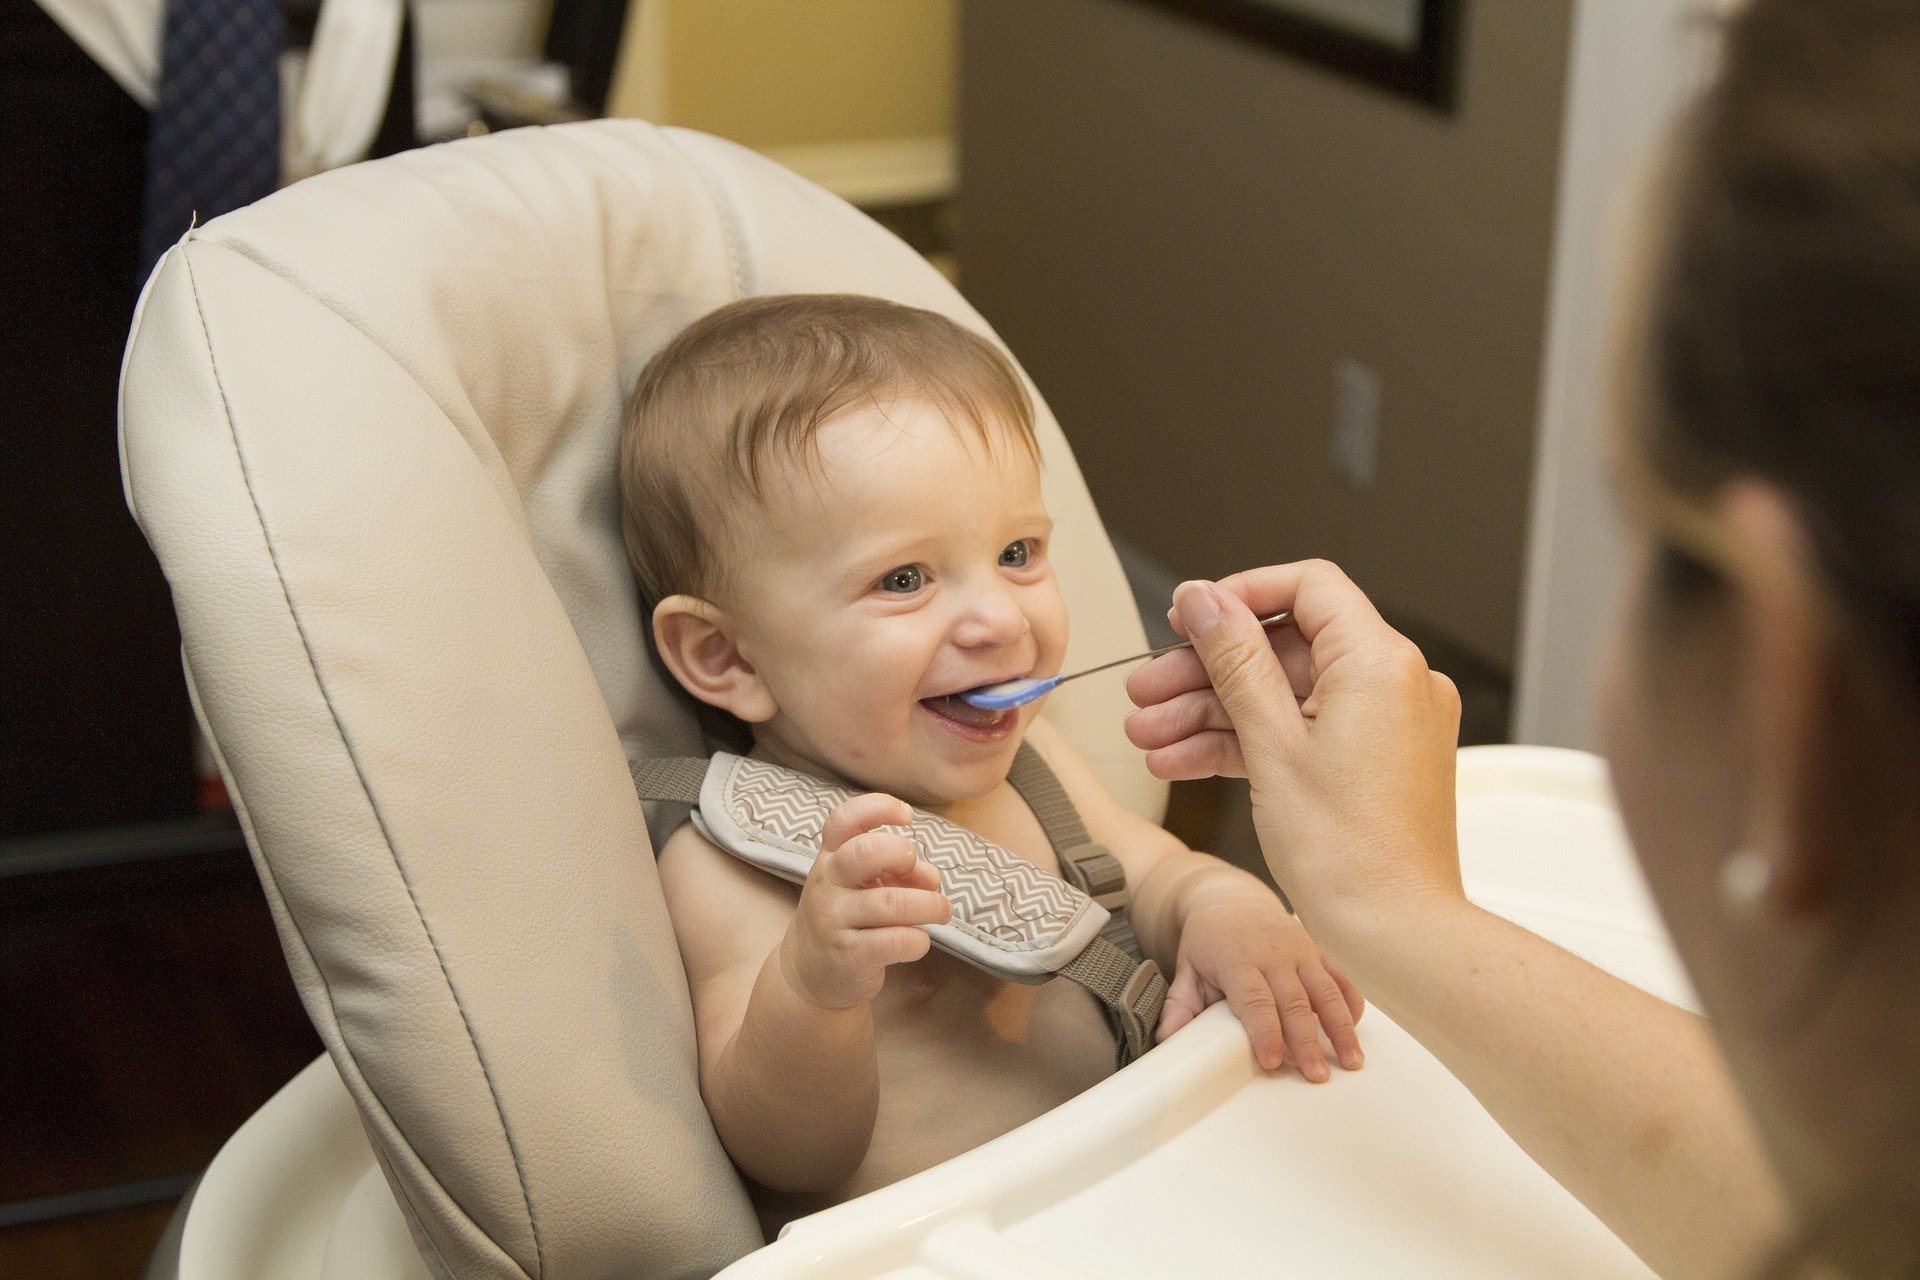 Baby being fed in highchair.